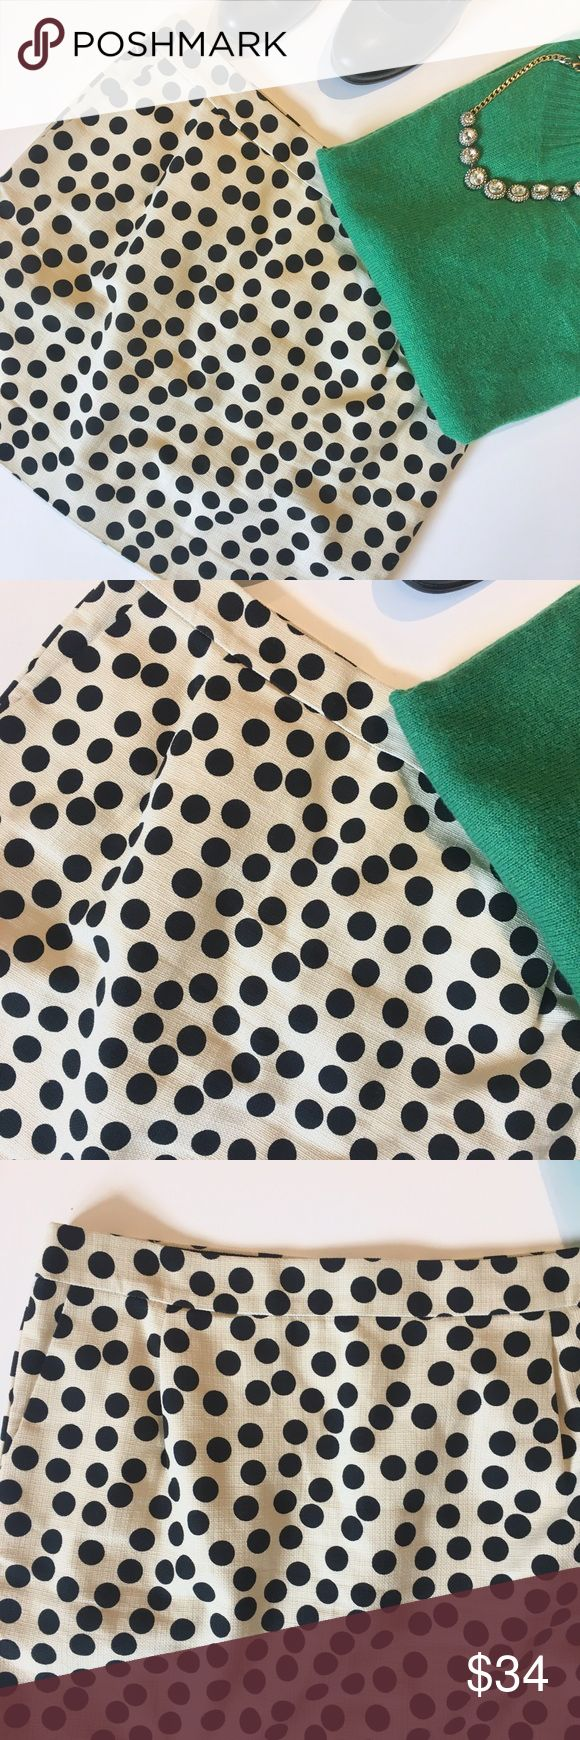 "J. Crew polka dot skirt Excellent condition, no flaws or signs of wear. Super fun skirt and can be worn a multitude of ways! Waist is approx 17.5"" width laid flat and total length is 17"". Add this to a bundle to save 15%. For jewelry, visit my profile for a link to shop. J. Crew Skirts Mini"